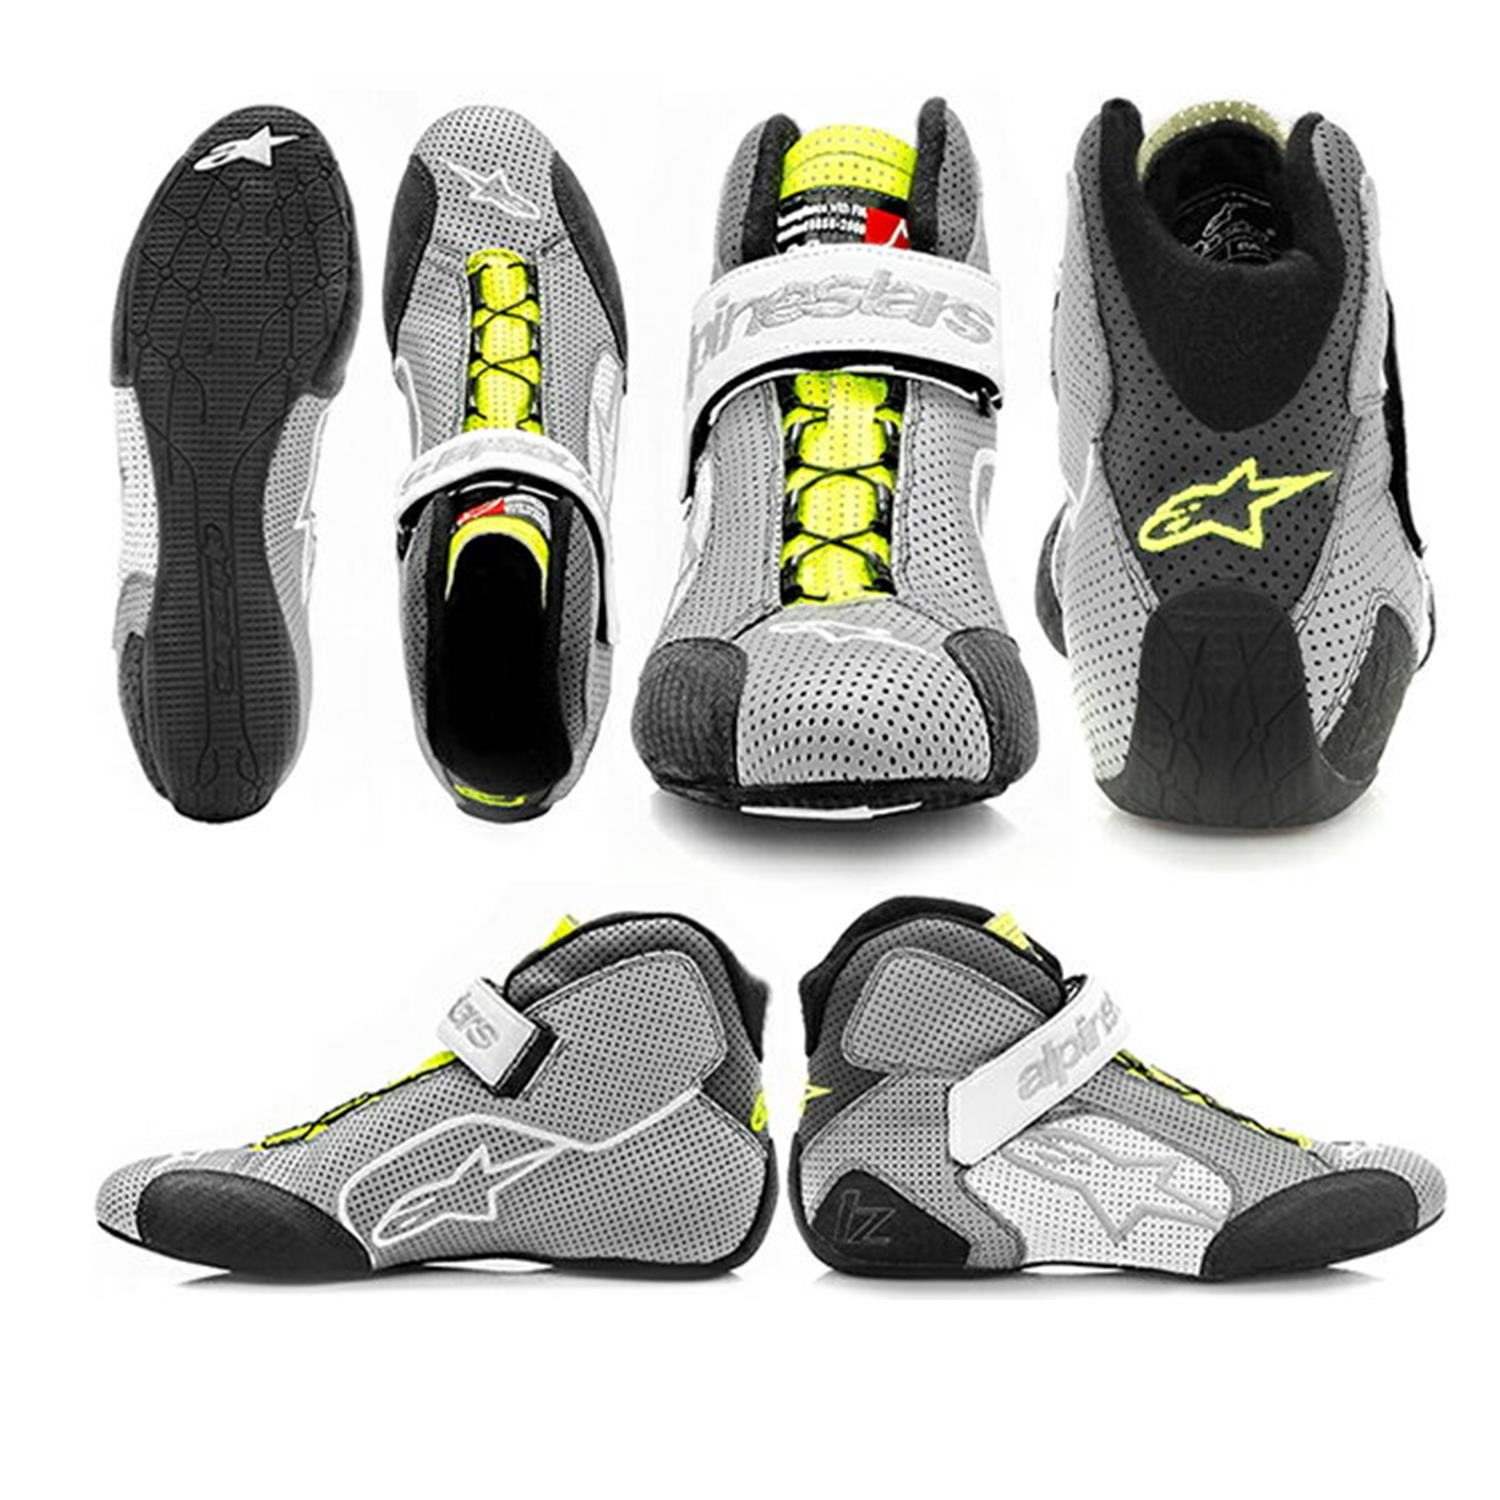 The Best Race Shoes will have… - Natural fibers and an aramid (flame resistant) interior lining.Smooth edges, extremely flat and thin soles, weighted and rounded heels, ankle support, incorporate wear patches at critical locations, utilize a lacing system that will never distract or impede the driver, plus maximize breathability with perforated leather or other technical materialsChoose a brand, model and size that fits your feet. No distractions.Repeat any distractions are both a safety and performance issue!